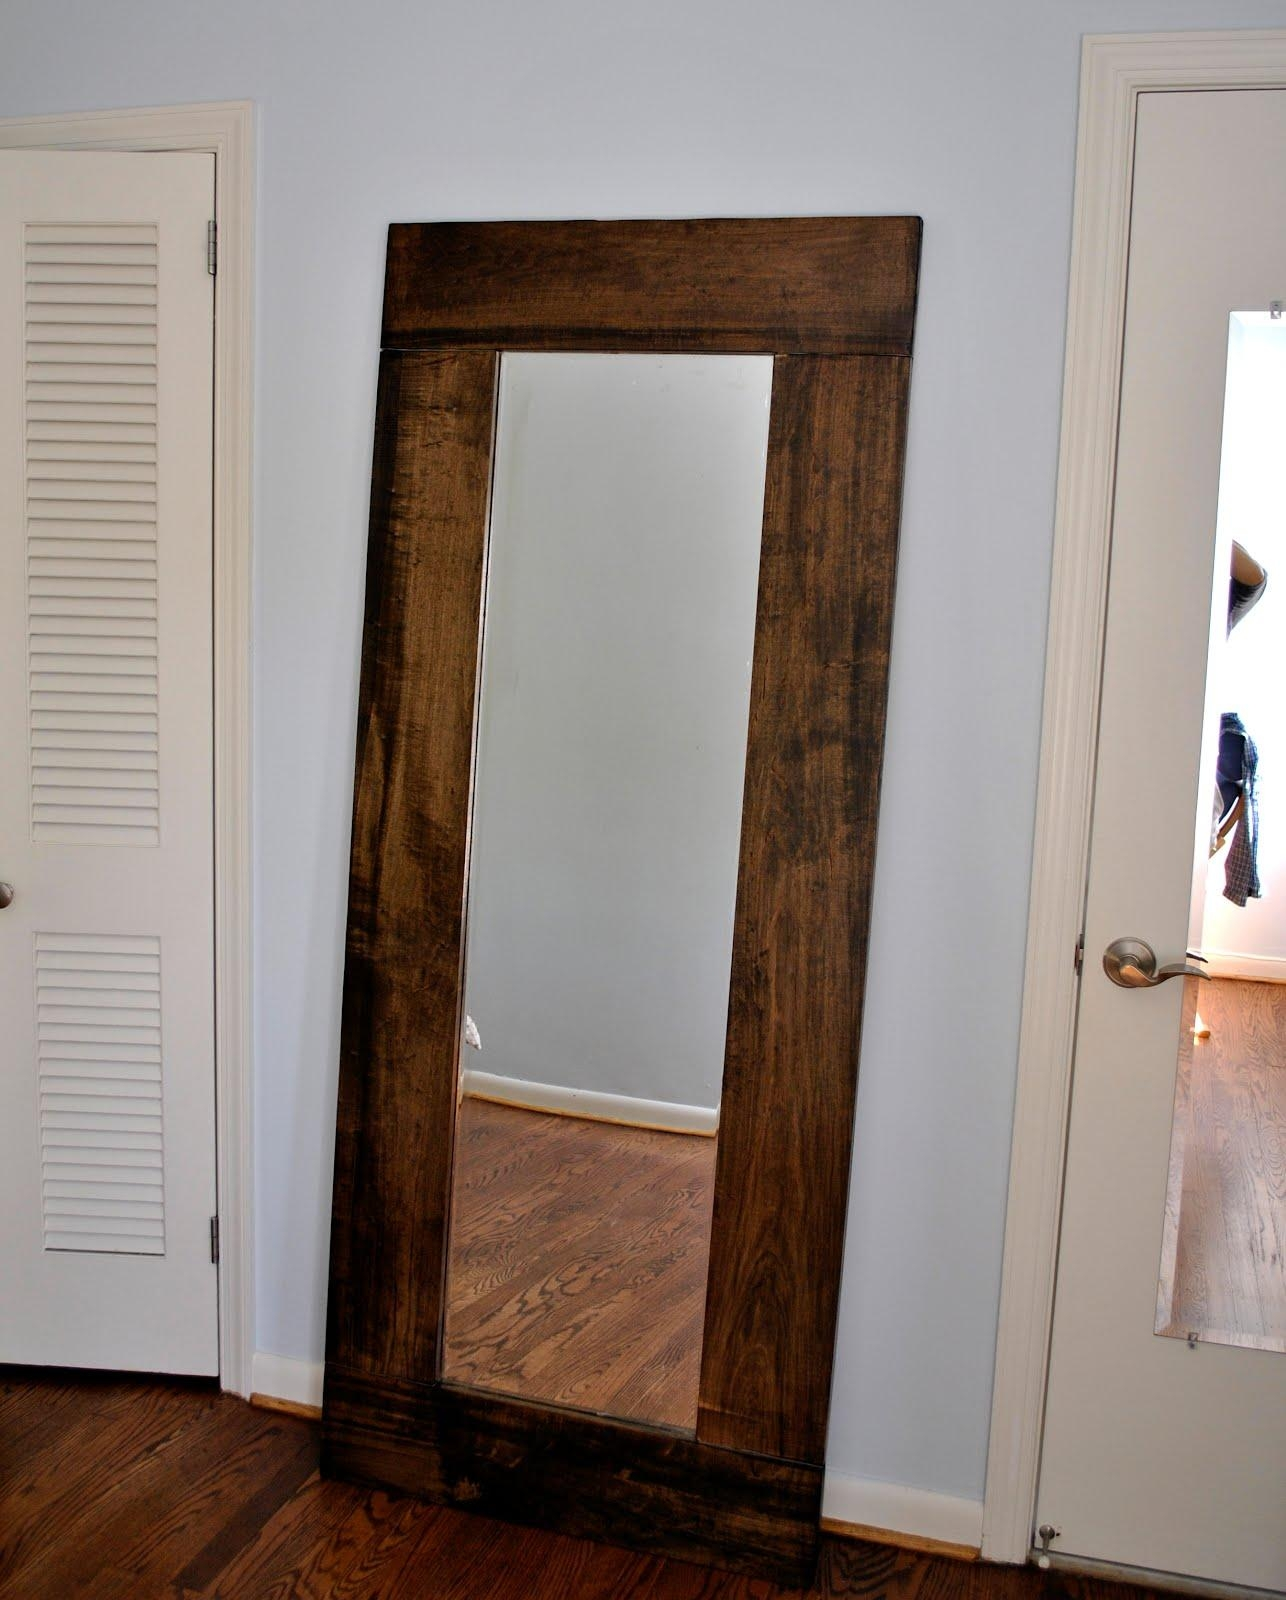 Plain Decoration Wood Framed Wall Mirrors Sensational Idea Leaned Within Decorative Wooden Mirrors (View 7 of 20)